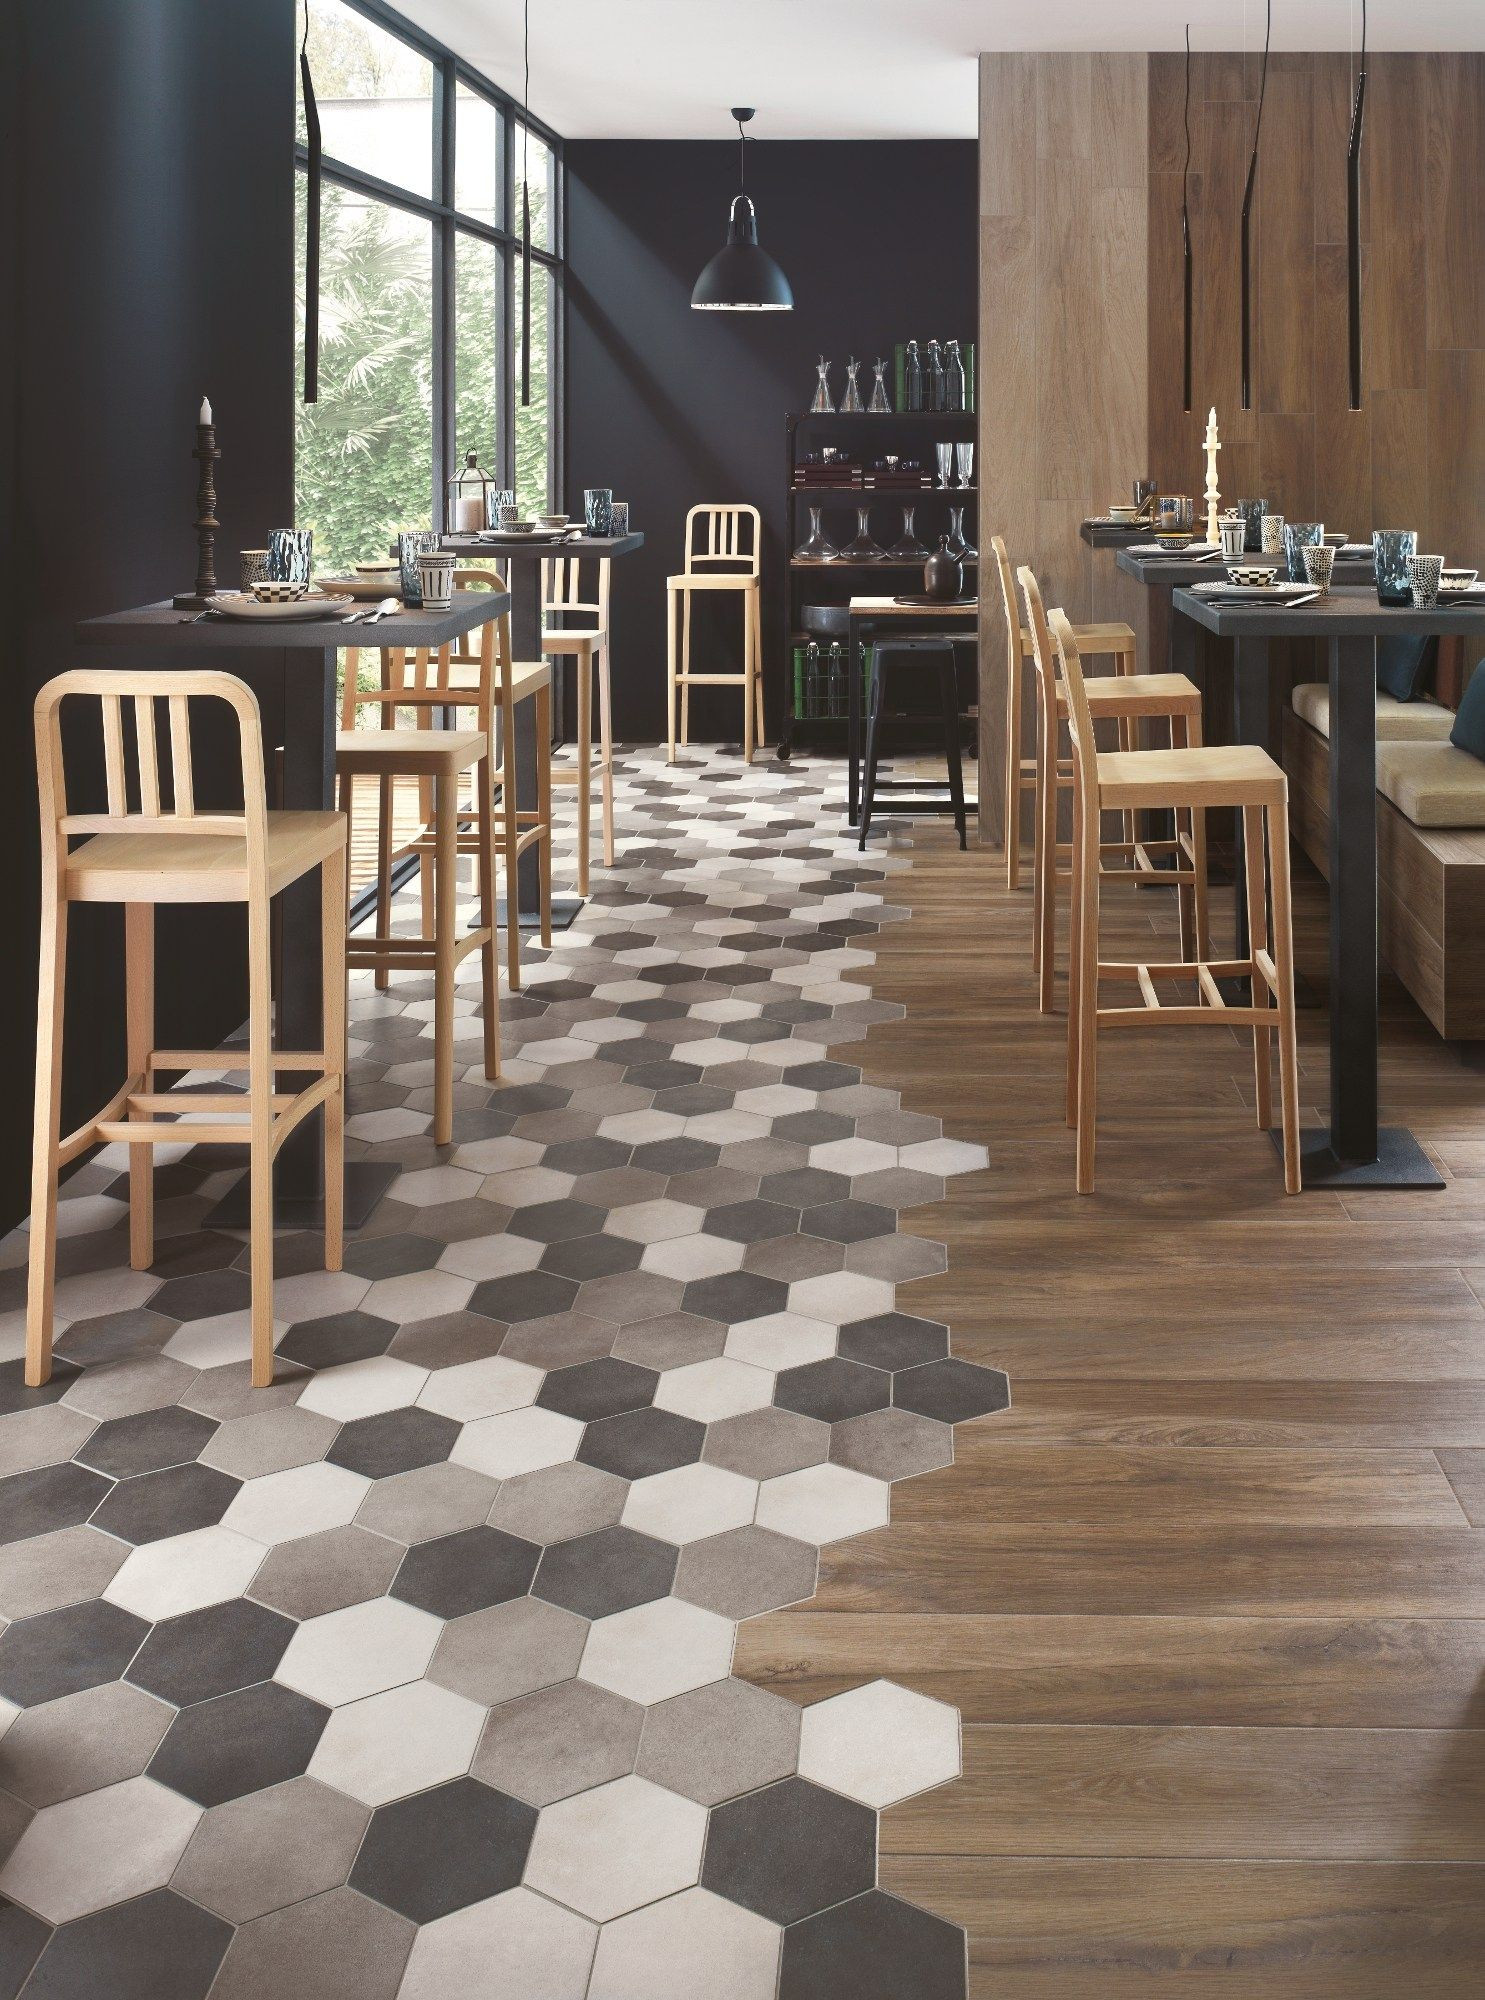 hardwood floor color transition of porcelain stoneware floor tiles woodplace by ragno marazzitile pertaining to prodotti 157208 rel7652782749f343388aaa5509b65583d8 hexagon floor tile wood floor tiles parquet flooring